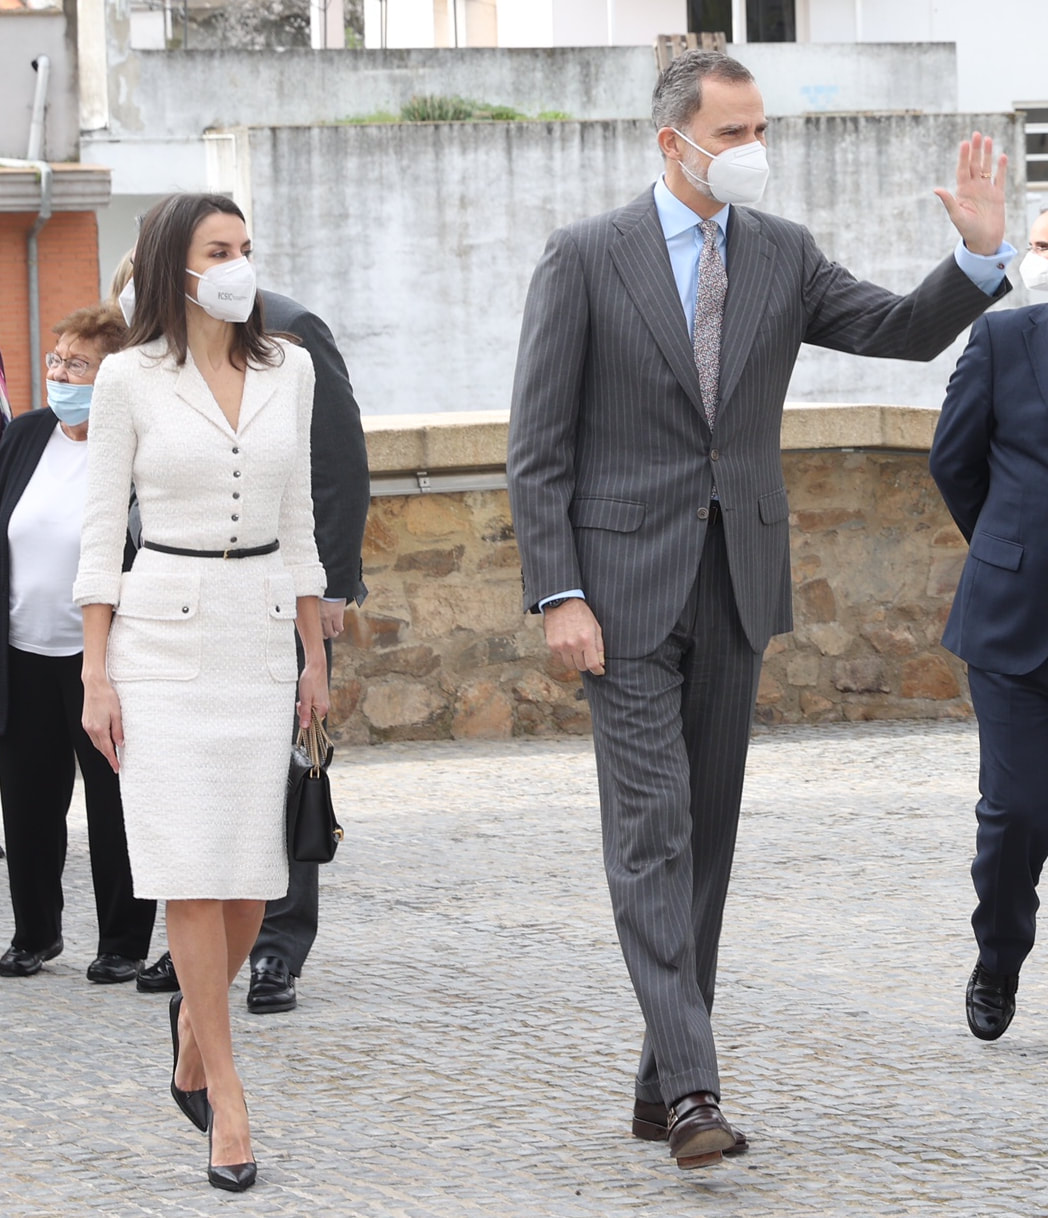 King Felipe VI and Queen Letizia of Spain attended the inauguration Helga de Alvear Contemporary Art Museum on 25 February 2021